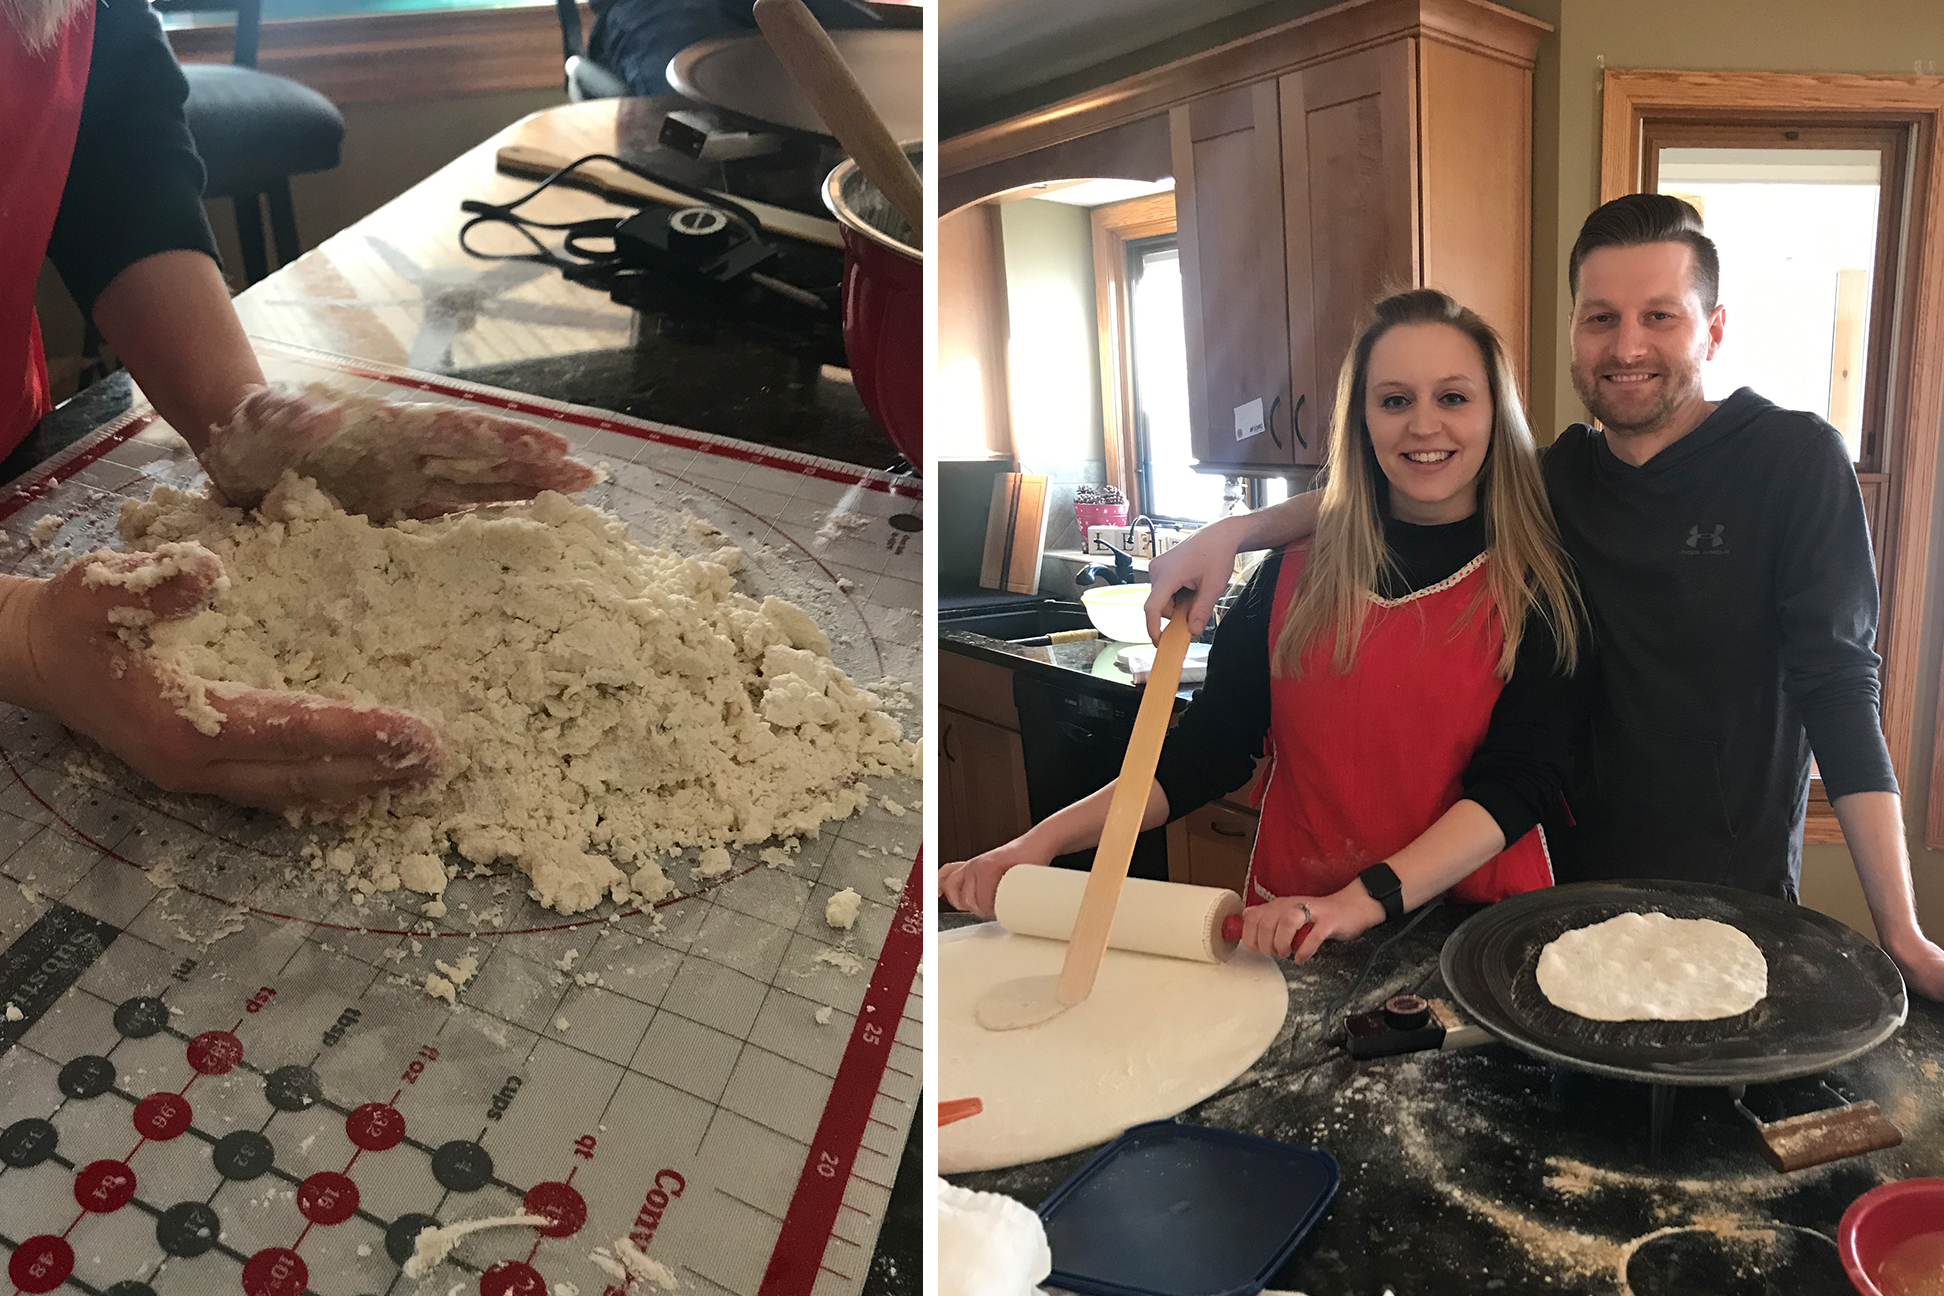 One photo of woman making lefsa. A second photo of a woman and man rolling out dough.